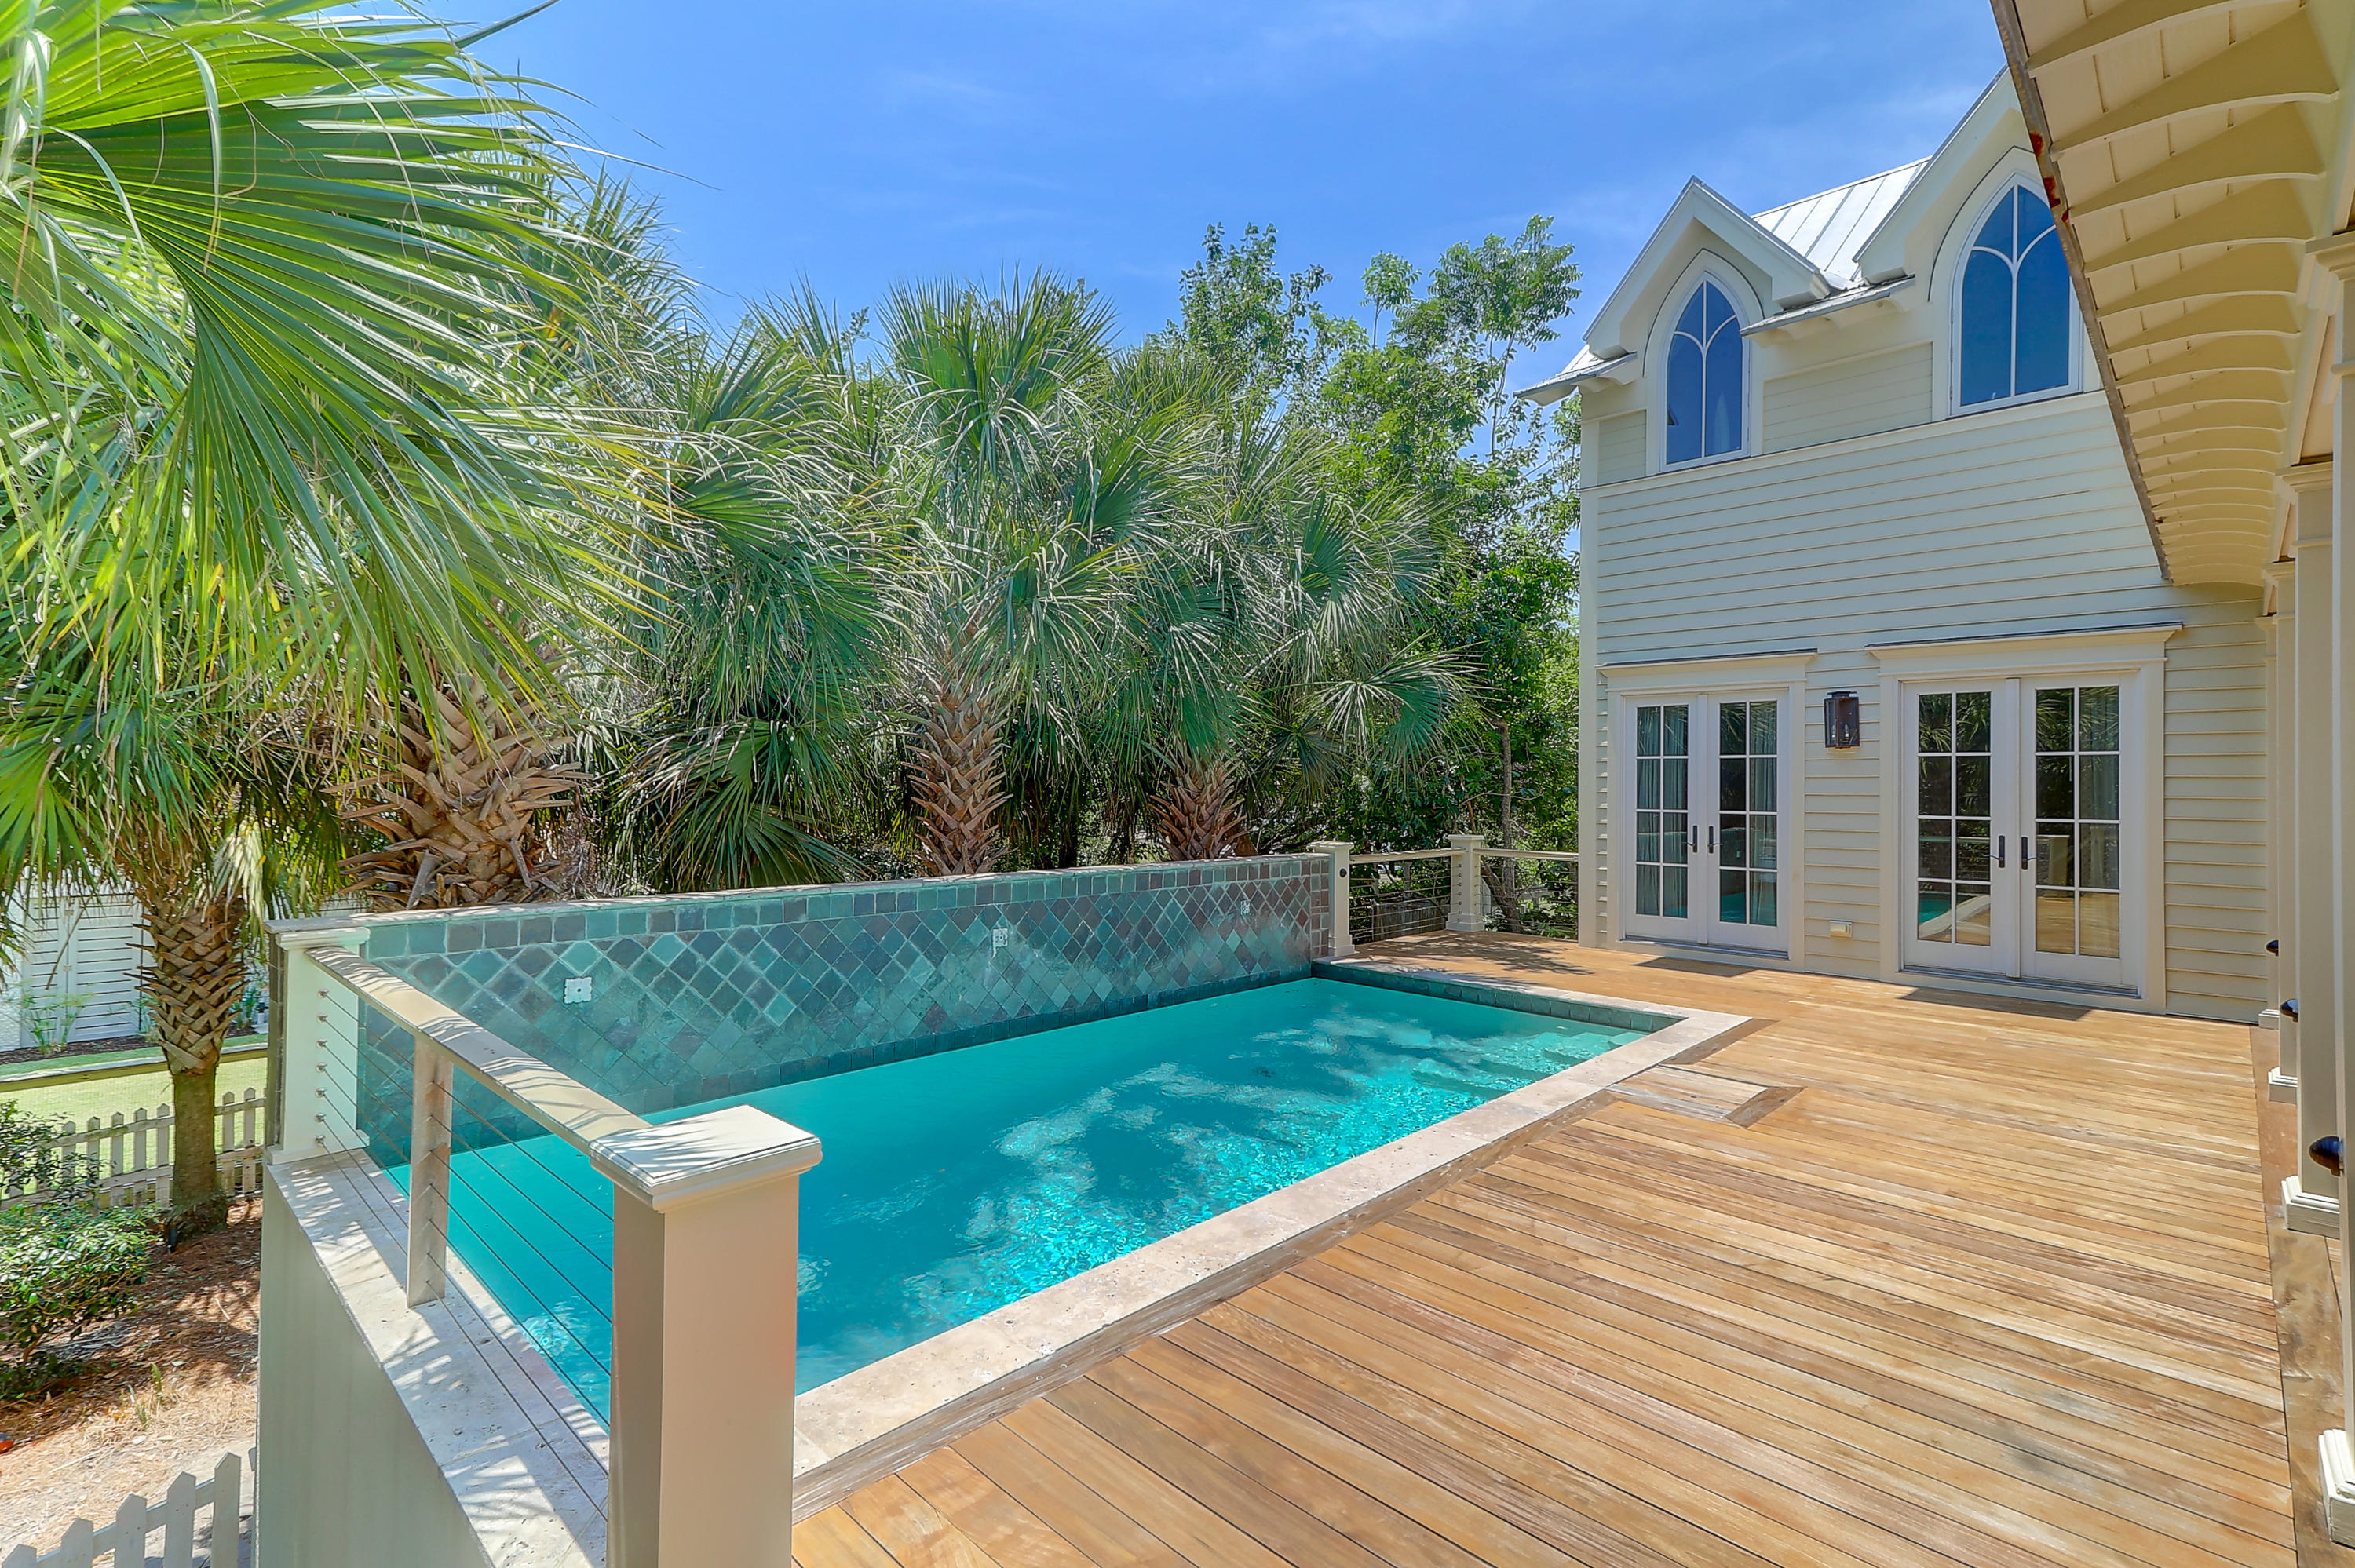 Sullivans Island Homes For Sale - 1723 Middle, Sullivans Island, SC - 33